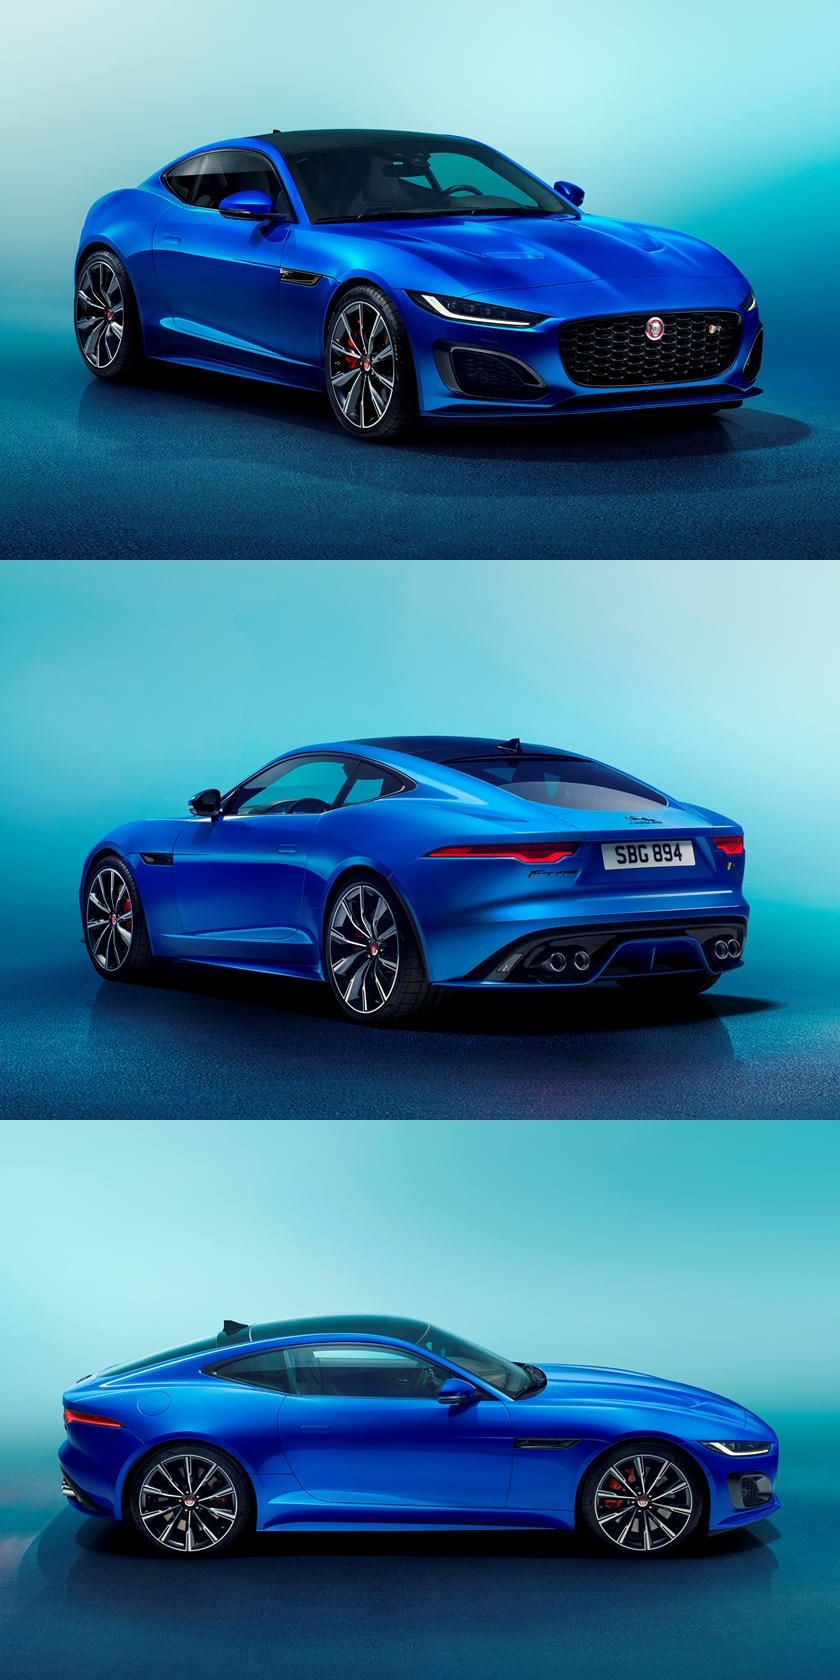 2021 Jaguar F Type How Far Has The Facelift Gone We Take A Look At How The Facelifted F Type Compares To The Previous Jaguar F Type Super Luxury Cars Jaguar